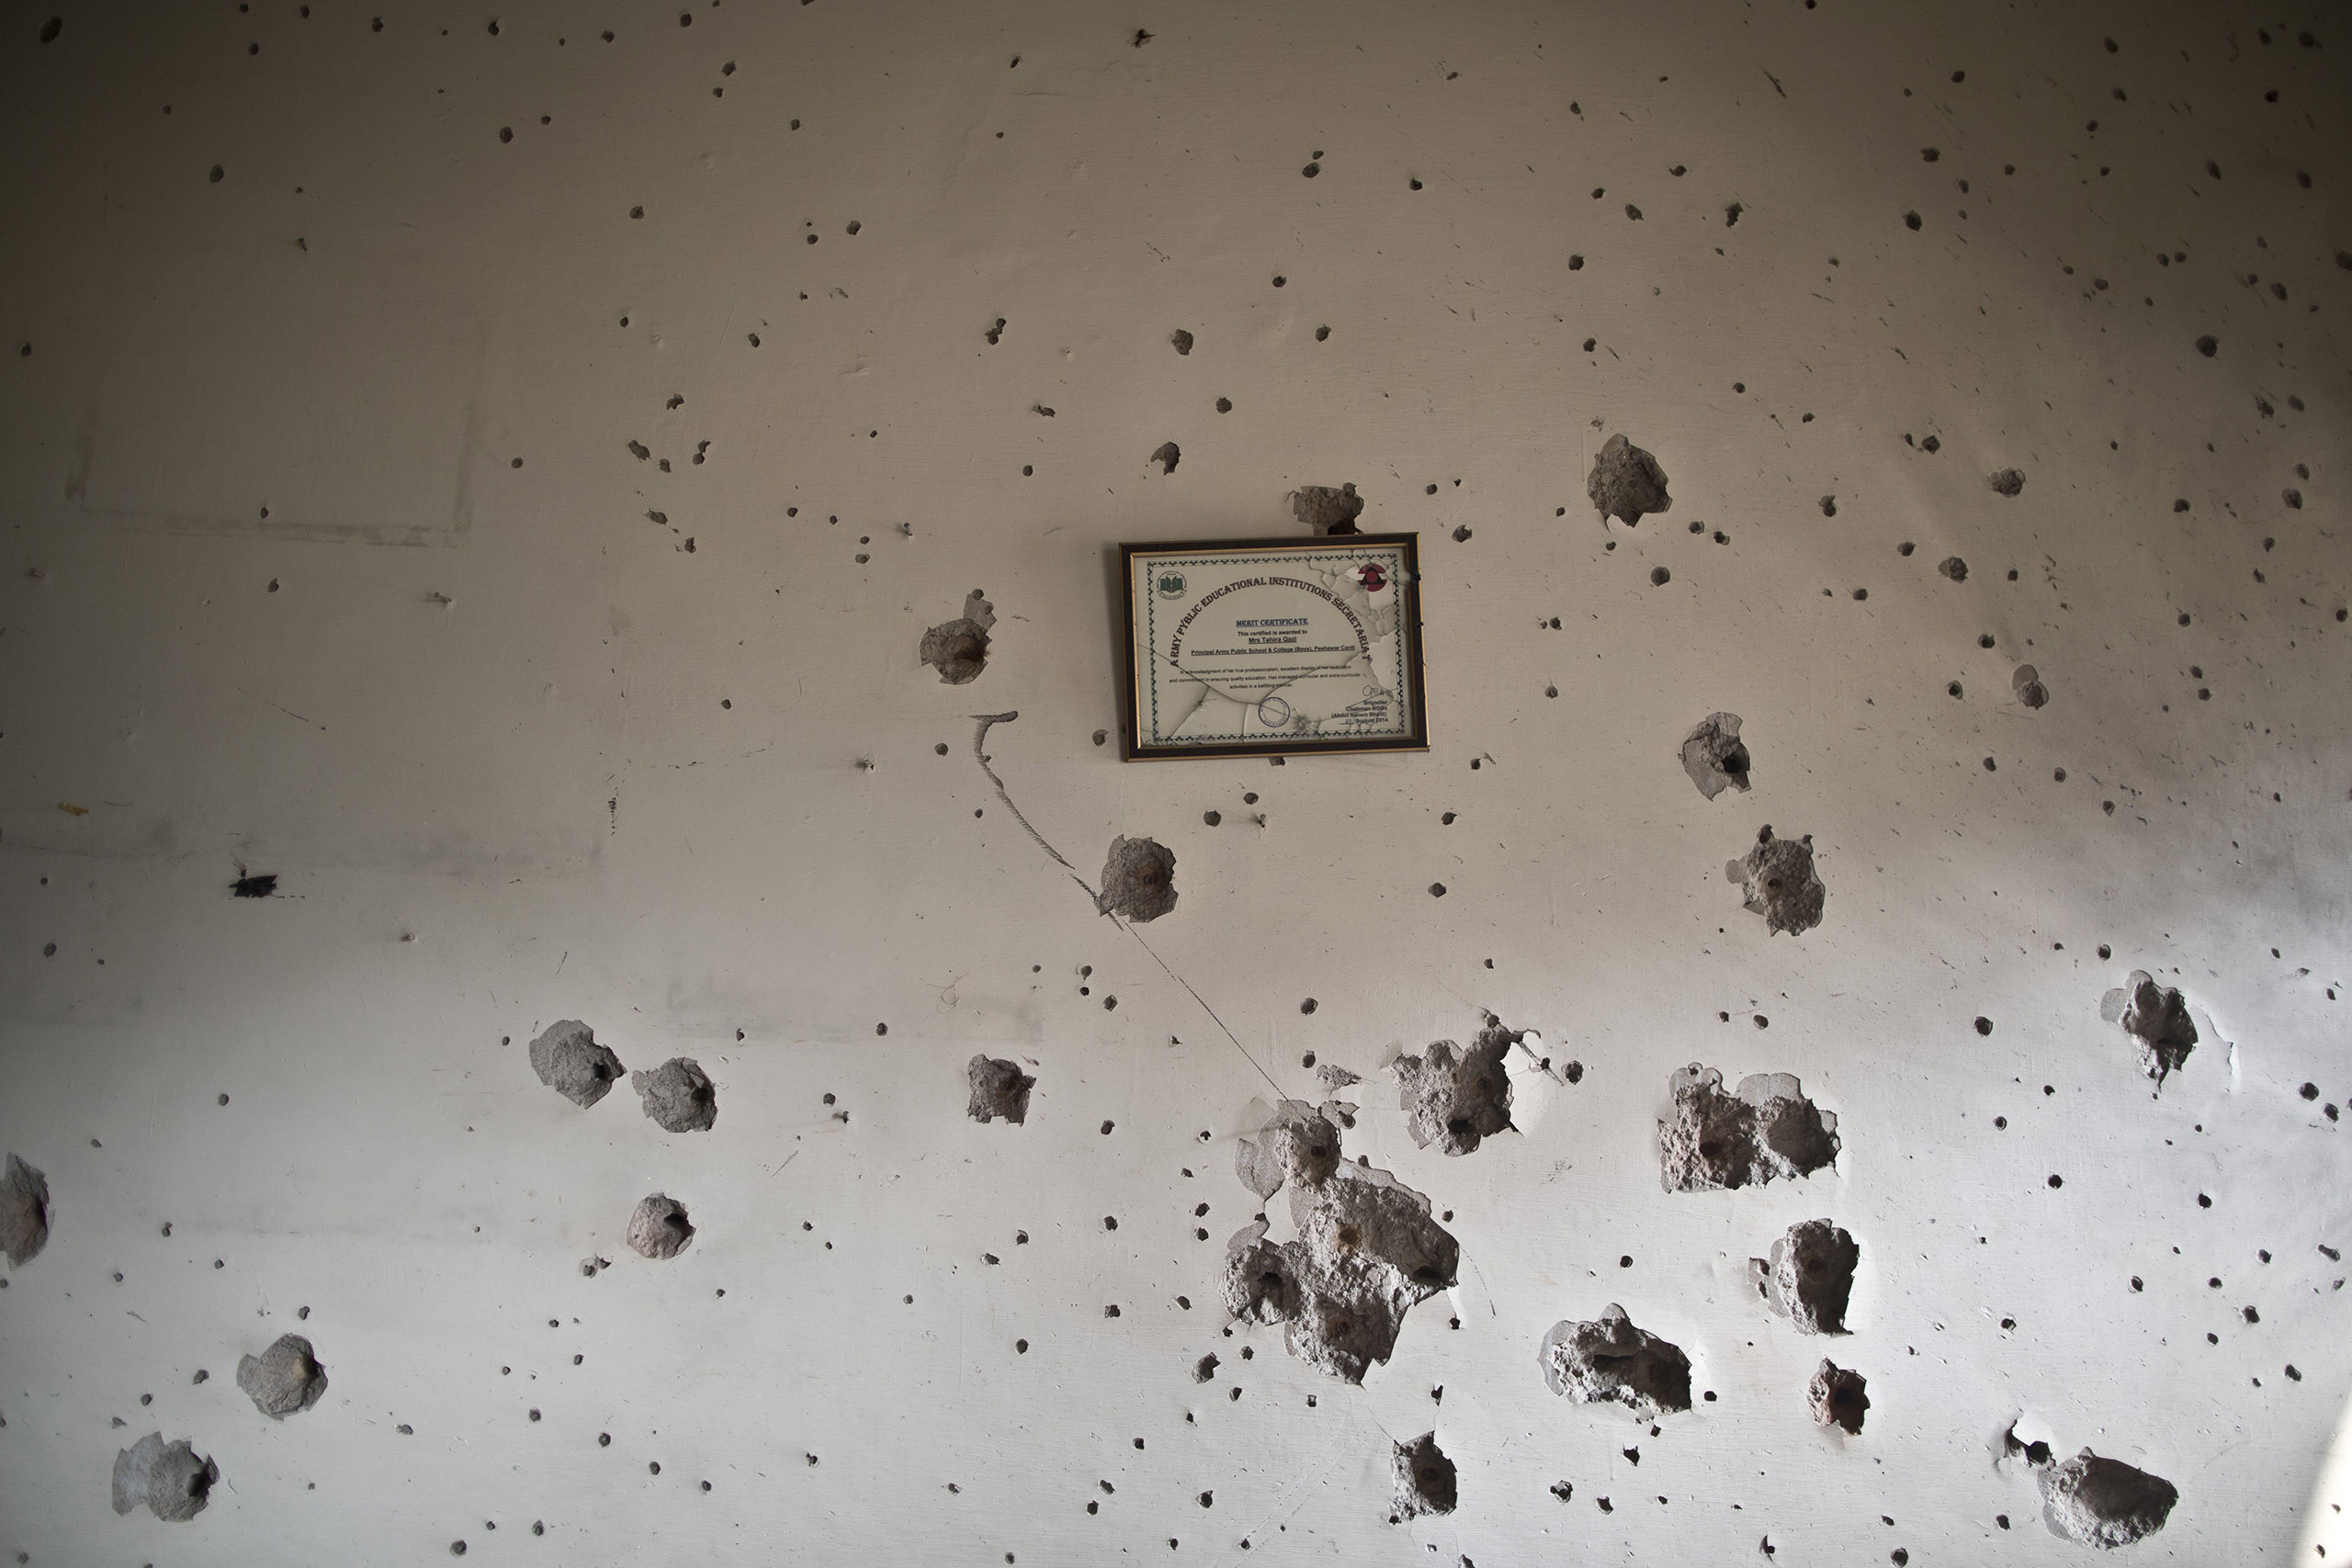 A wall riddled with bullet holes inside the Army Public School, which was attacked on Dec. 16 by the Pakistani Taliban. Peshawar, Pakistan. Dec. 18, 2014.